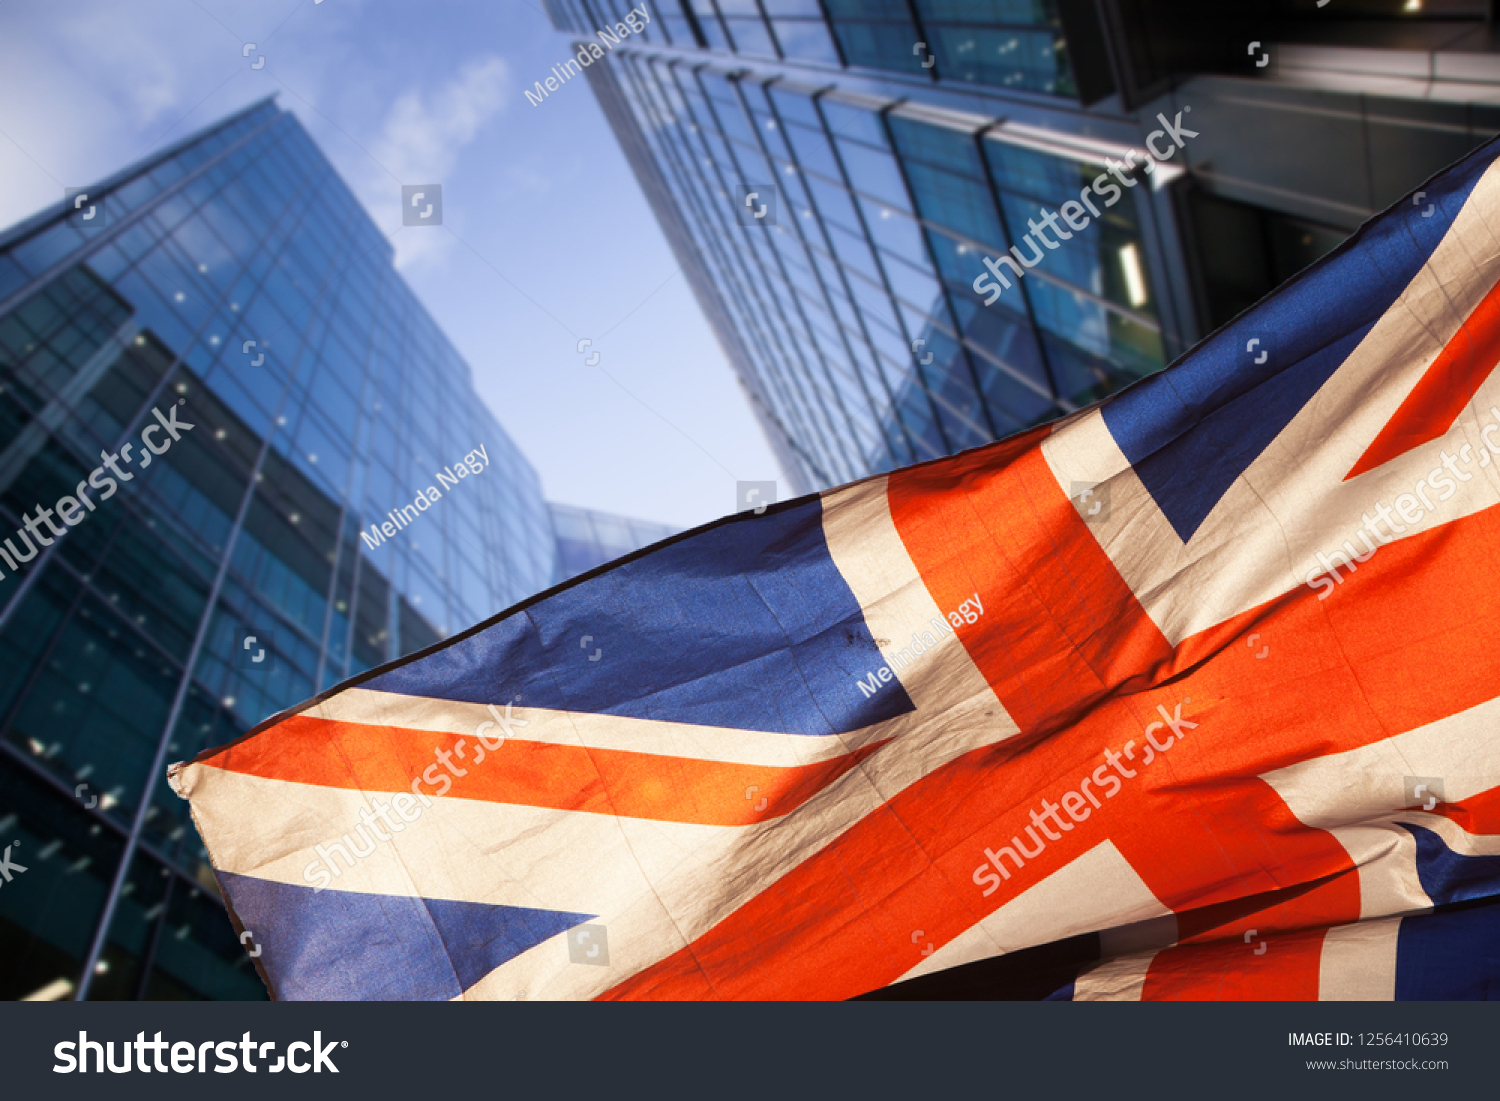 brexit concept - UK economy after Brexit deal - double exposure of flag and Canary Wharf business center skyscrapers #1256410639